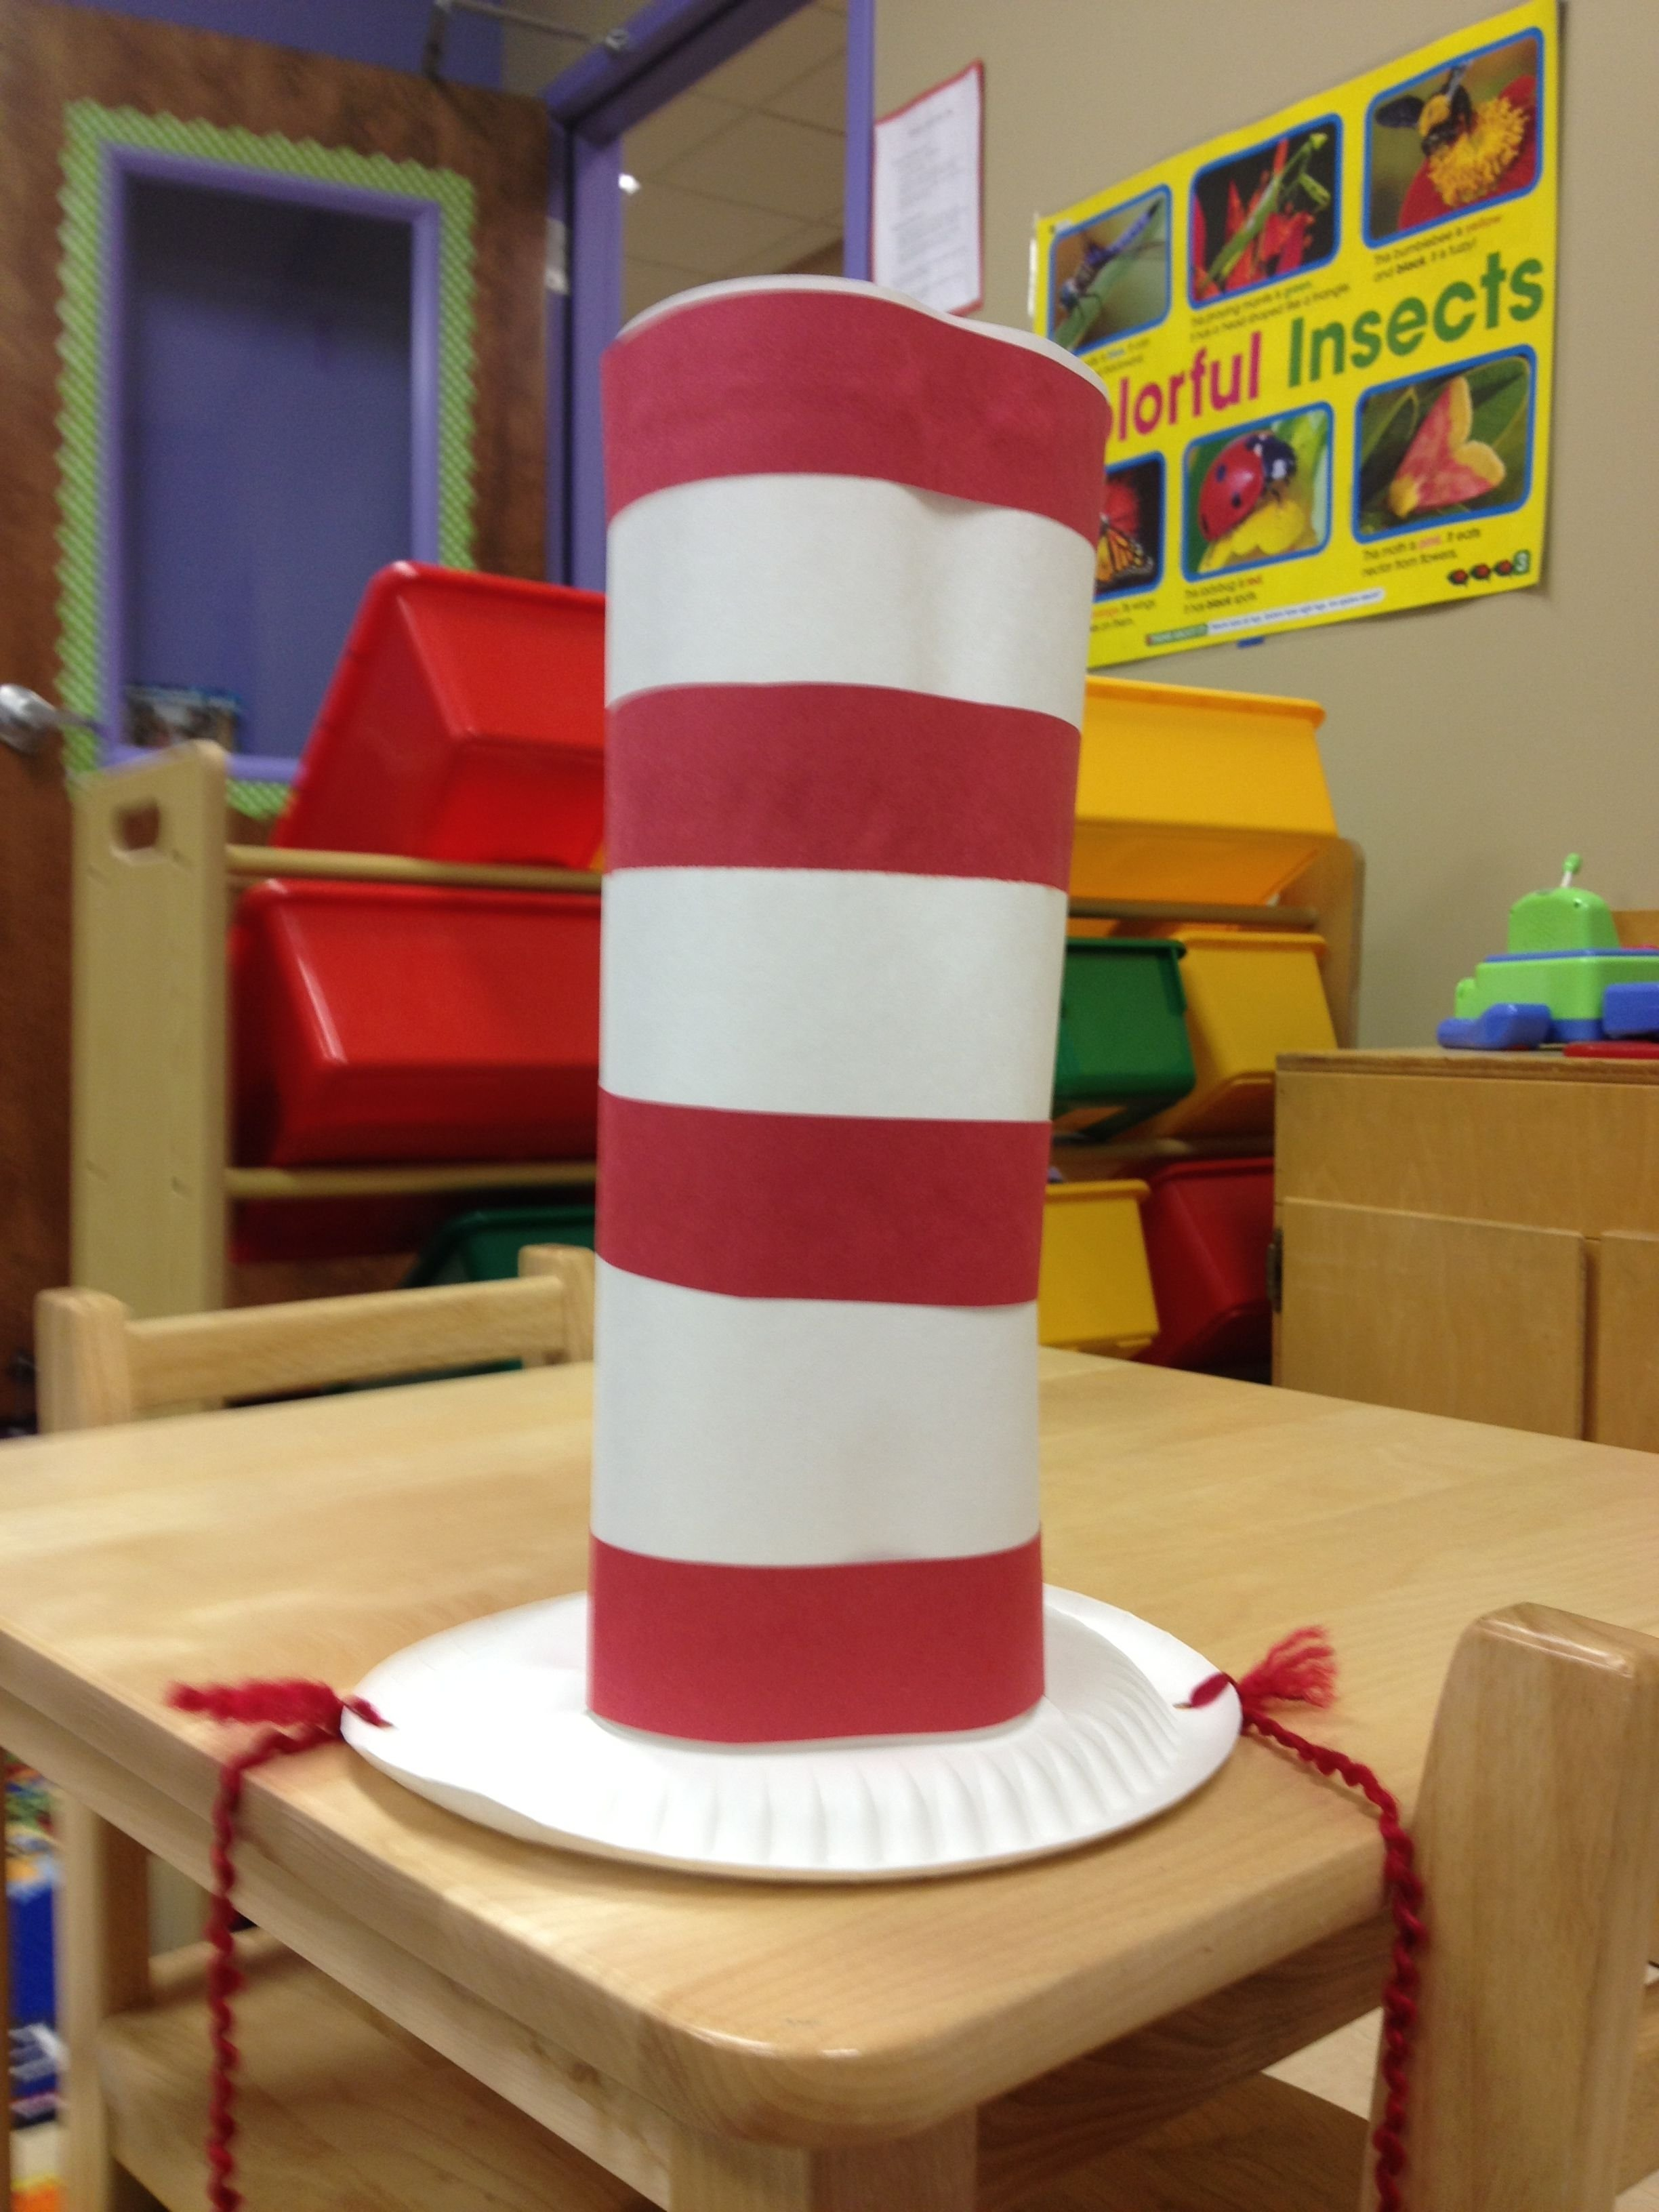 10 Most Popular Cat In The Hat Craft Ideas dr seuss week cat in the hat hat made from paper plate yarn and